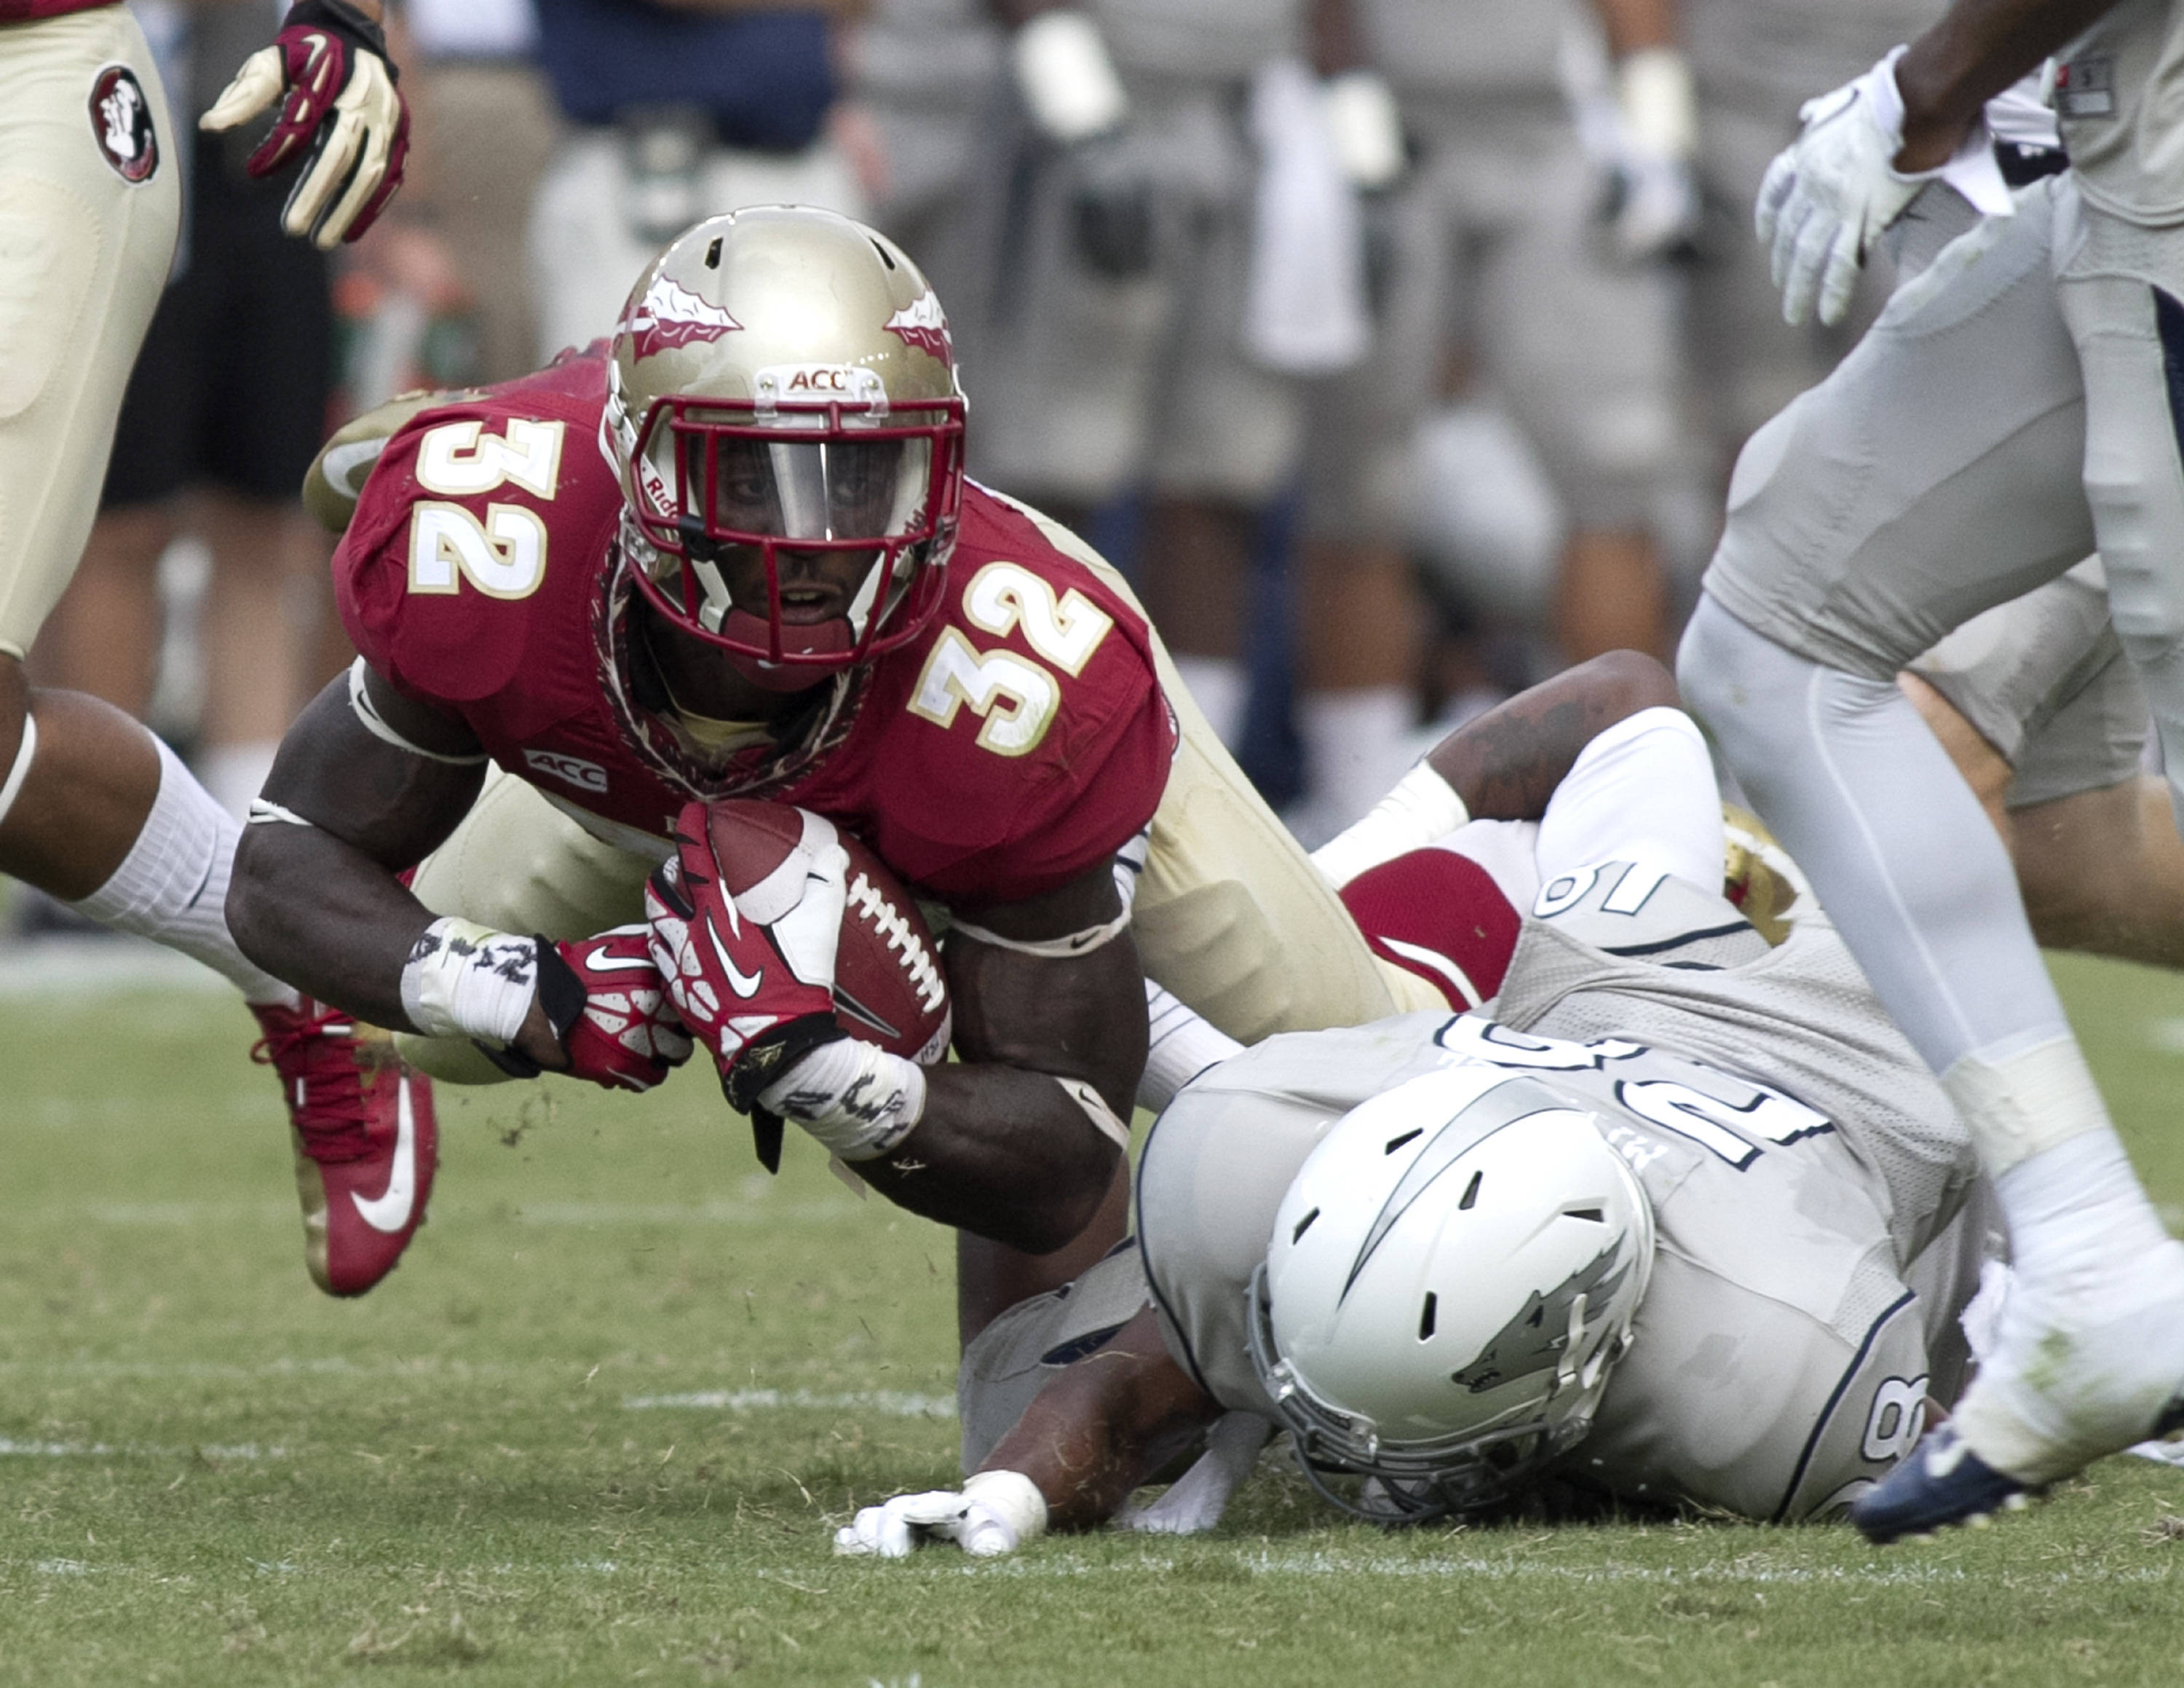 James Wilder, Jr. (32), FSU vs Nevada,  9-14-13, (Photo by Steve Musco)